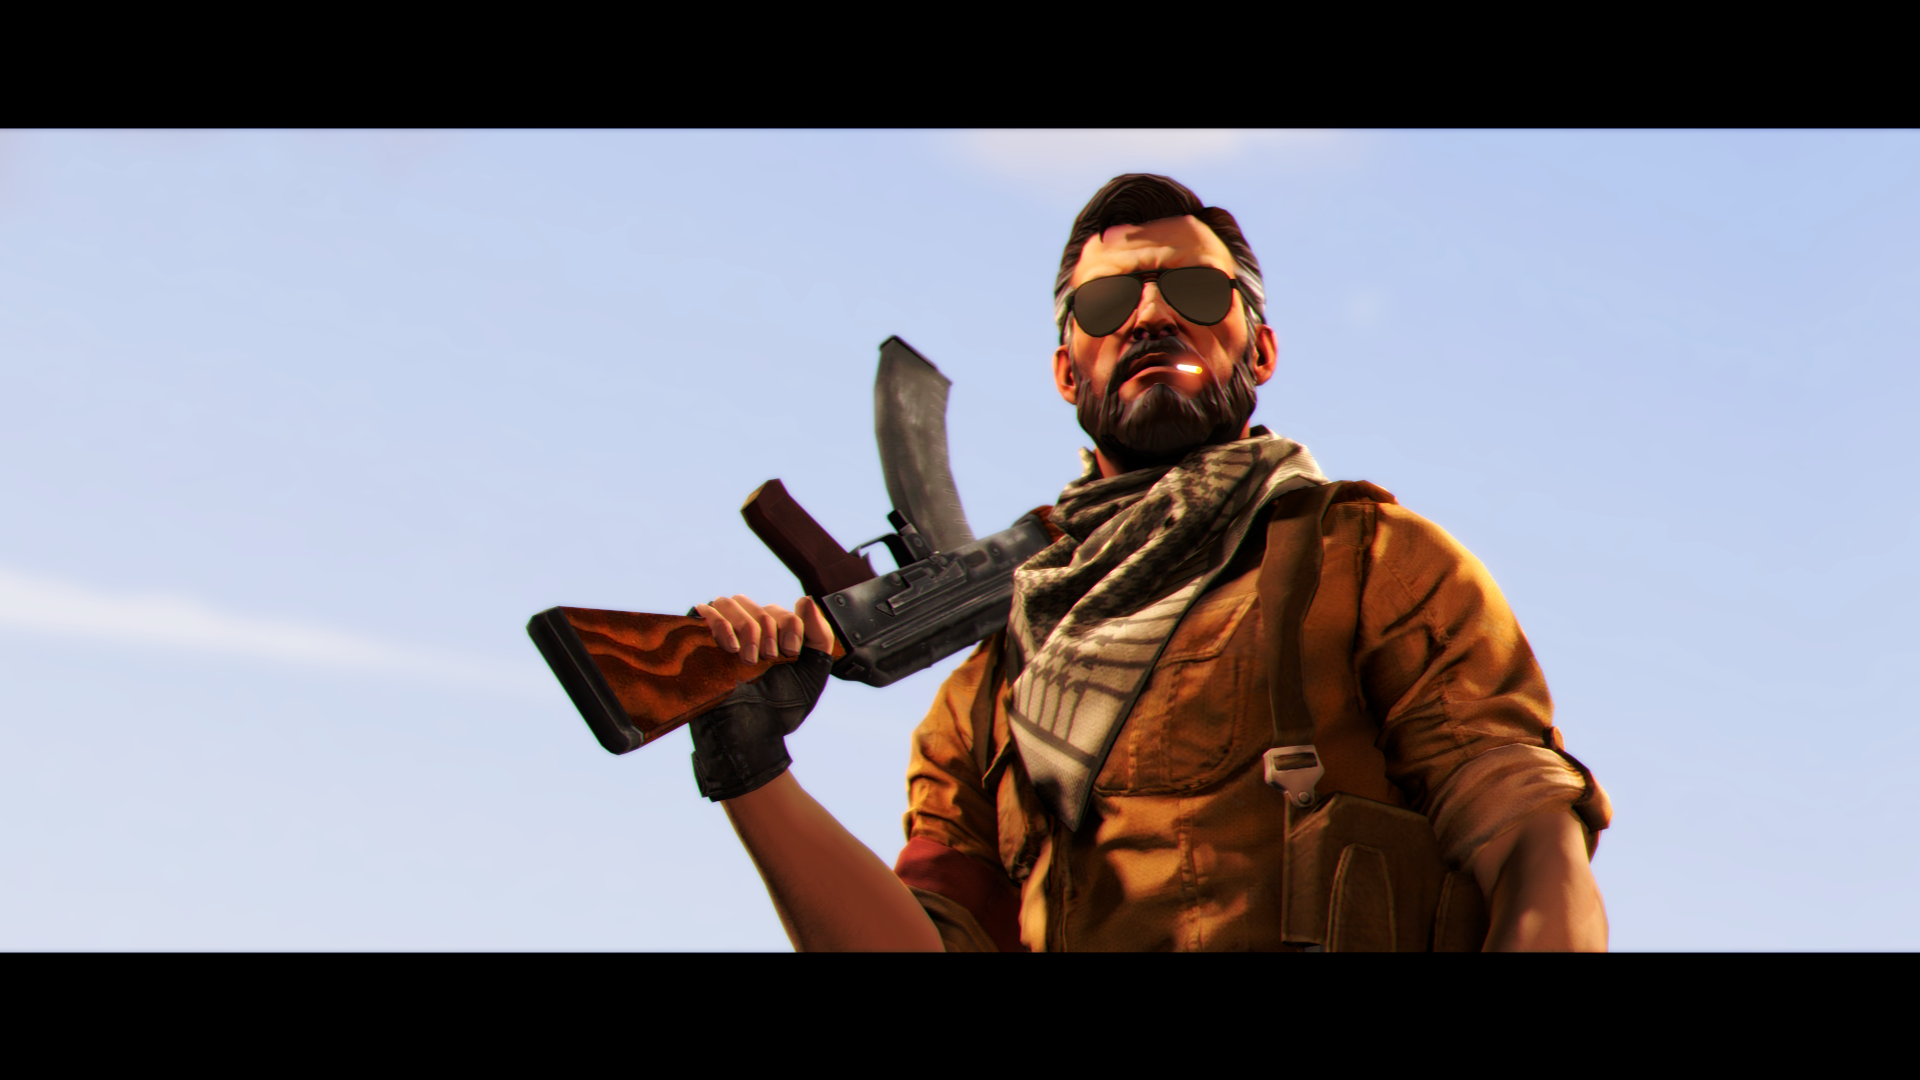 Counter Strike Global Offensive Counter Strike 1 6 Valve Anti Cheat Cheating In Video Games Png Aimbot Cheating In Onl Counter Strike Source Counter Strike